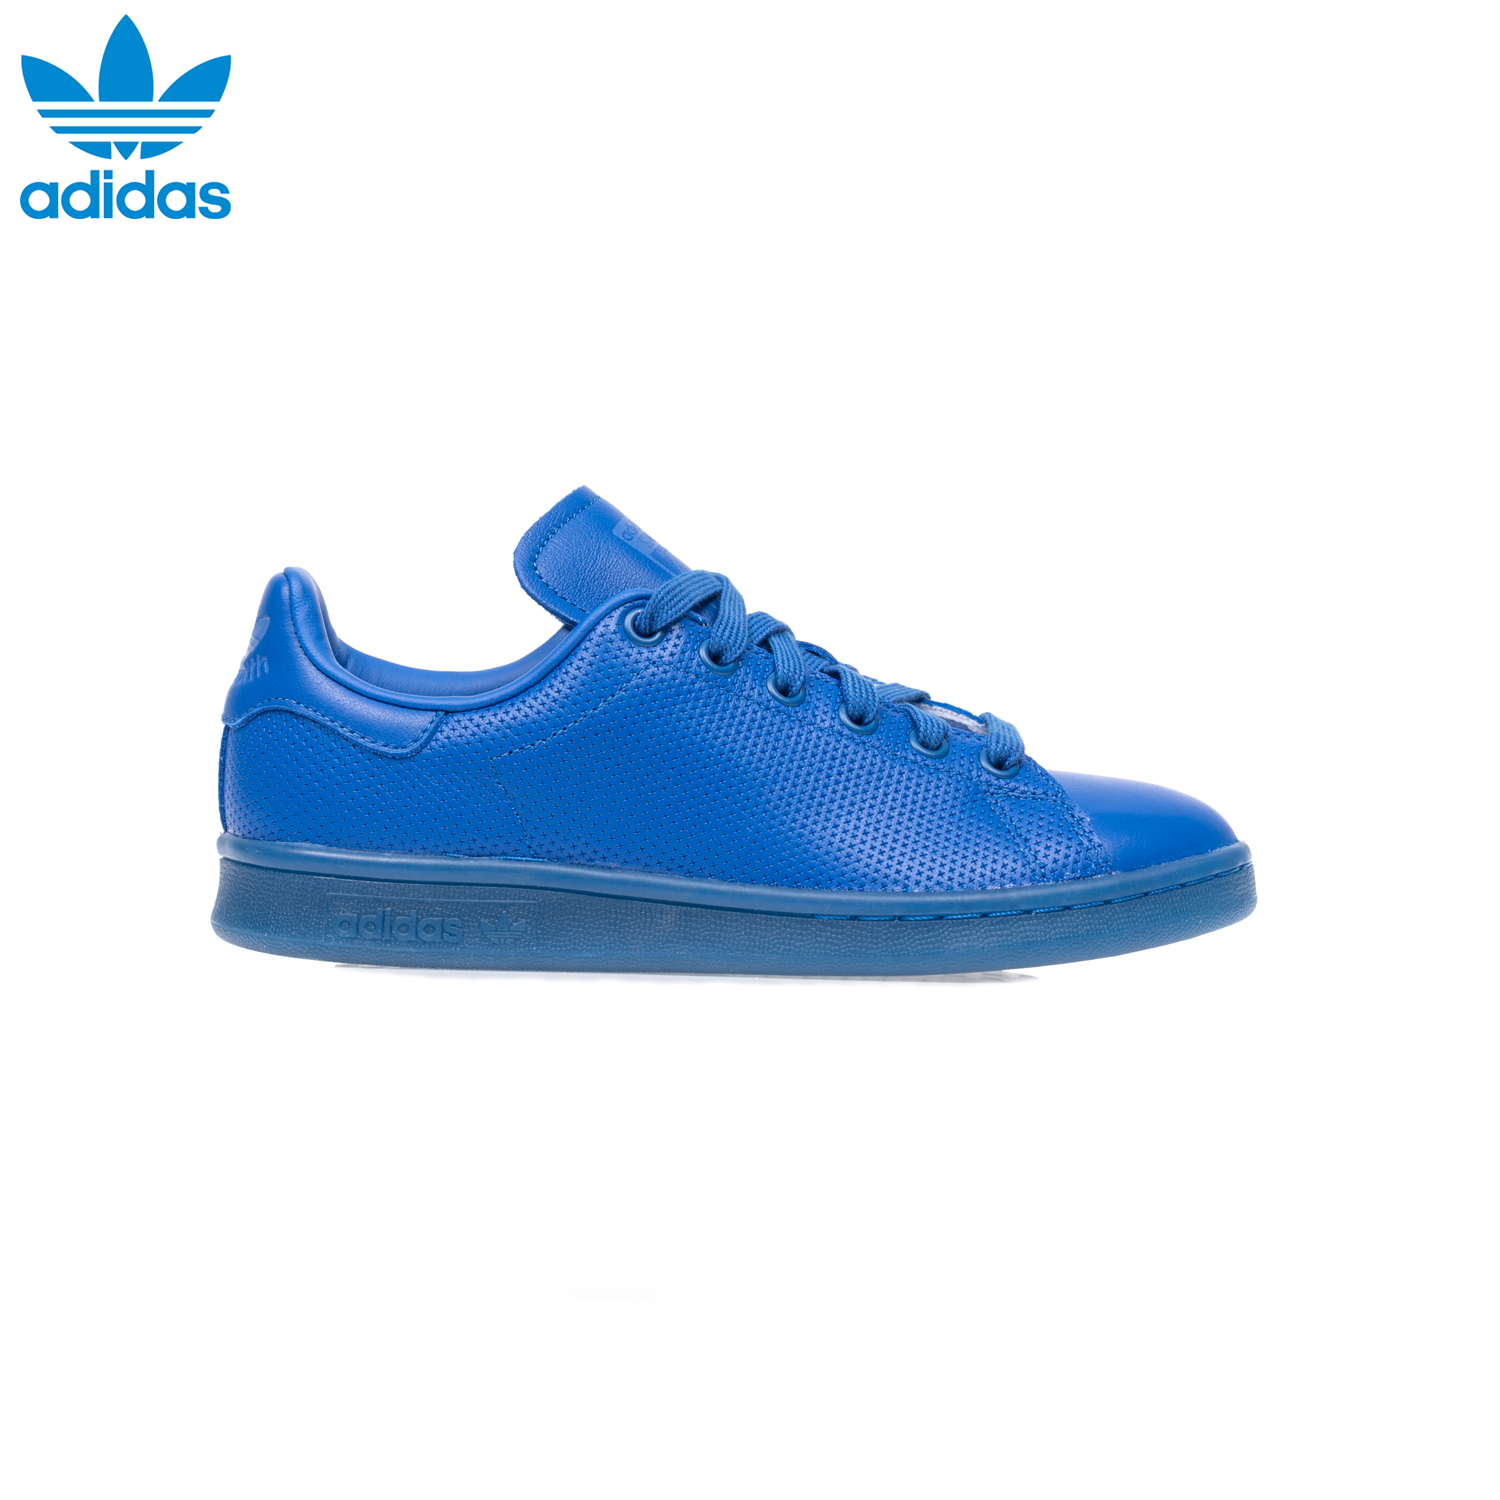 ADIDAS – Unisex παπούτσια adidas STAN SMITH ADICOLOR μπλε